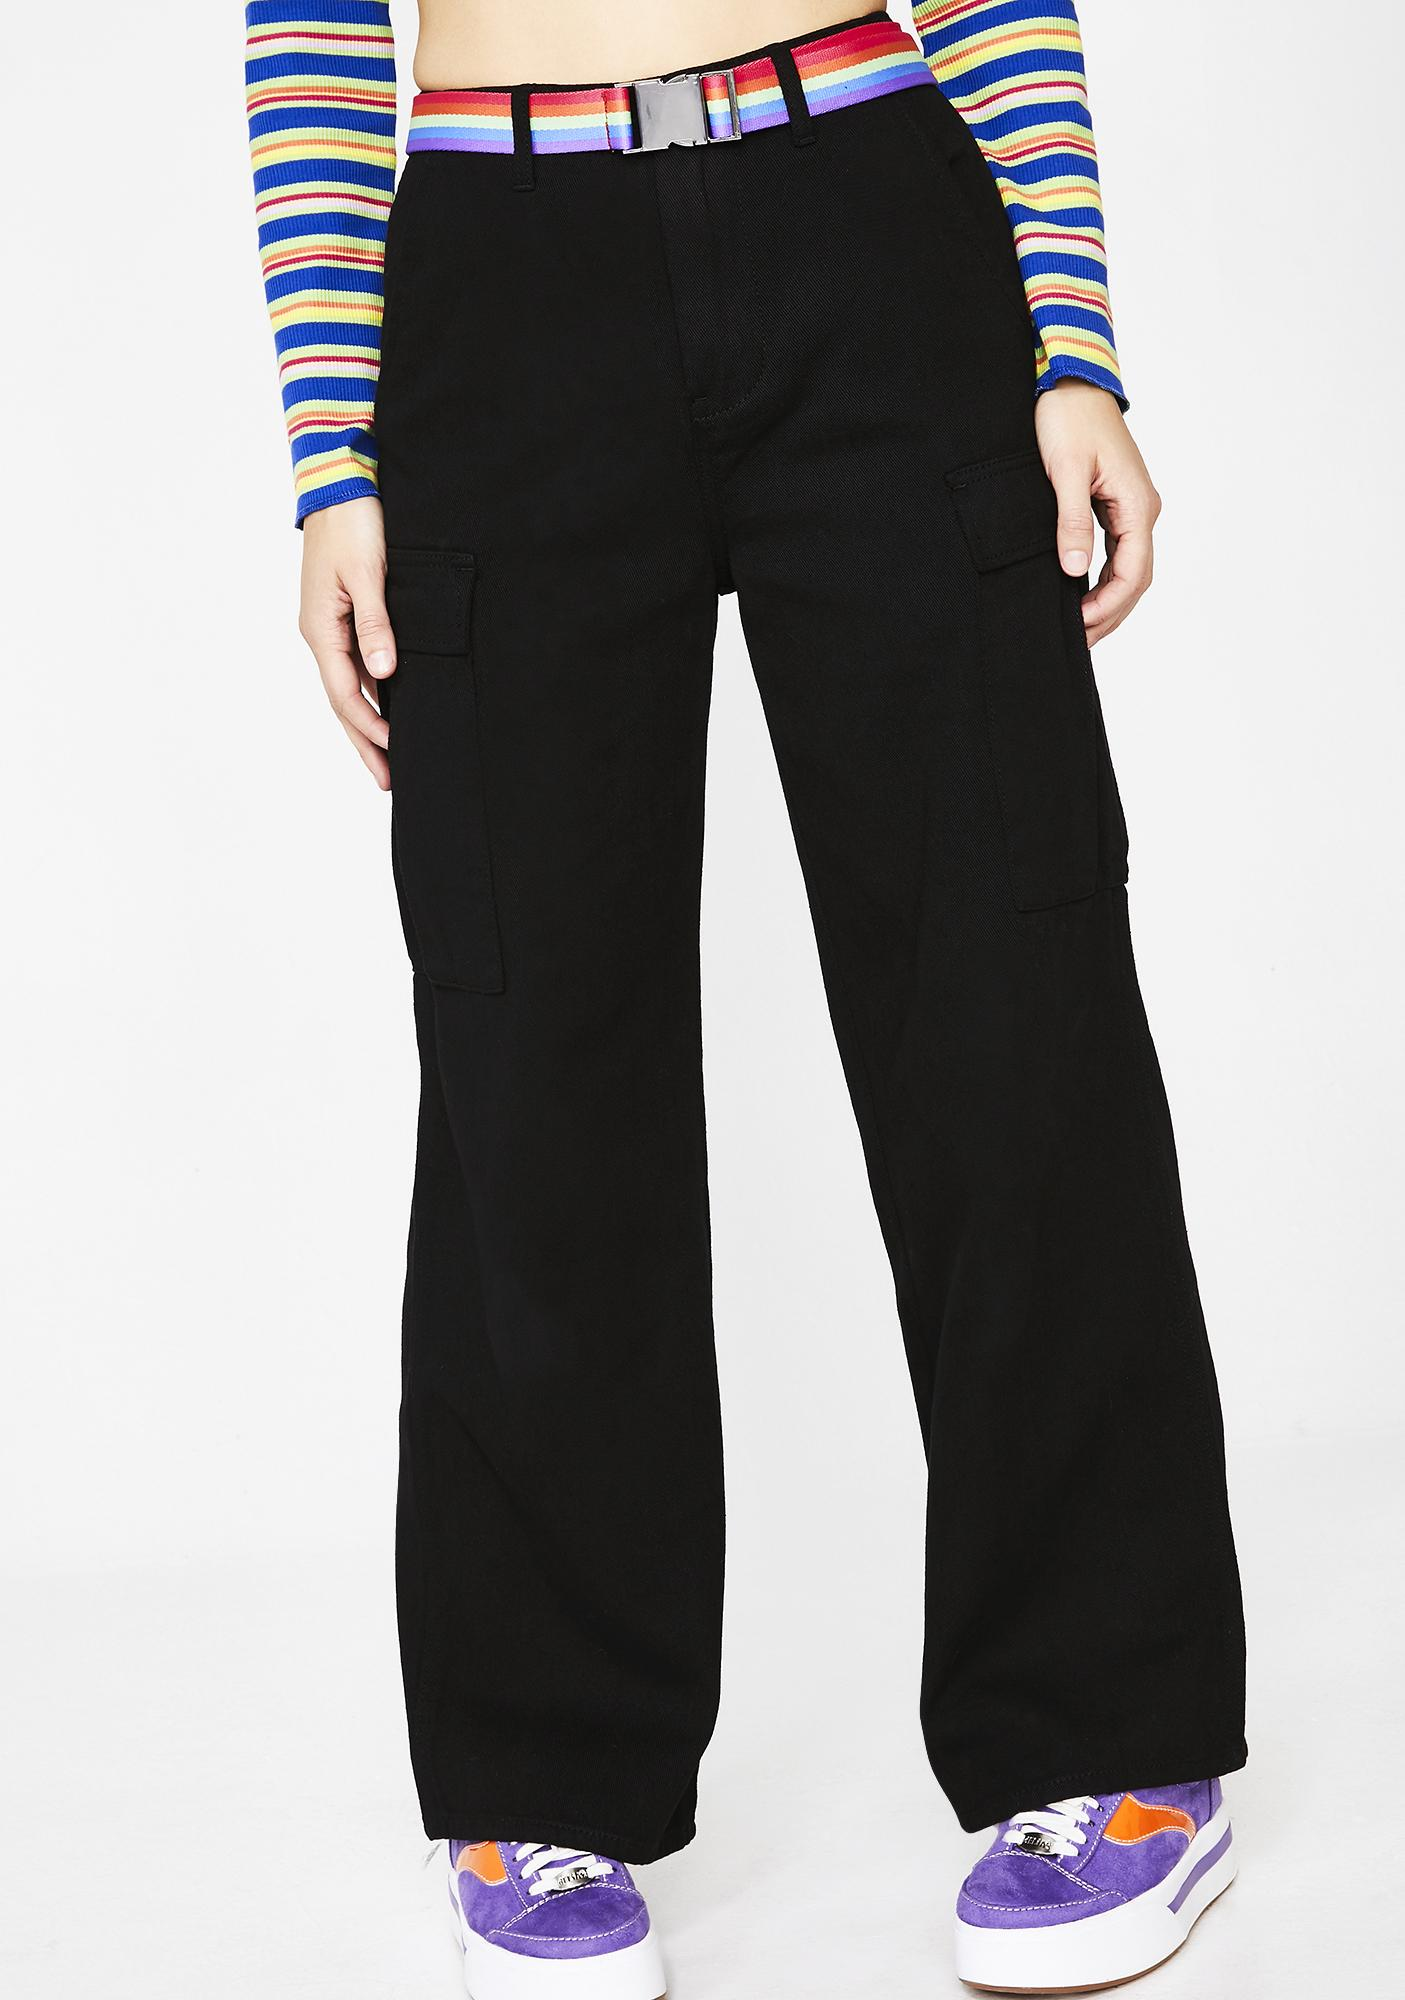 dELiA*s by Dolls Kill Larger Than Life Cargo Pants